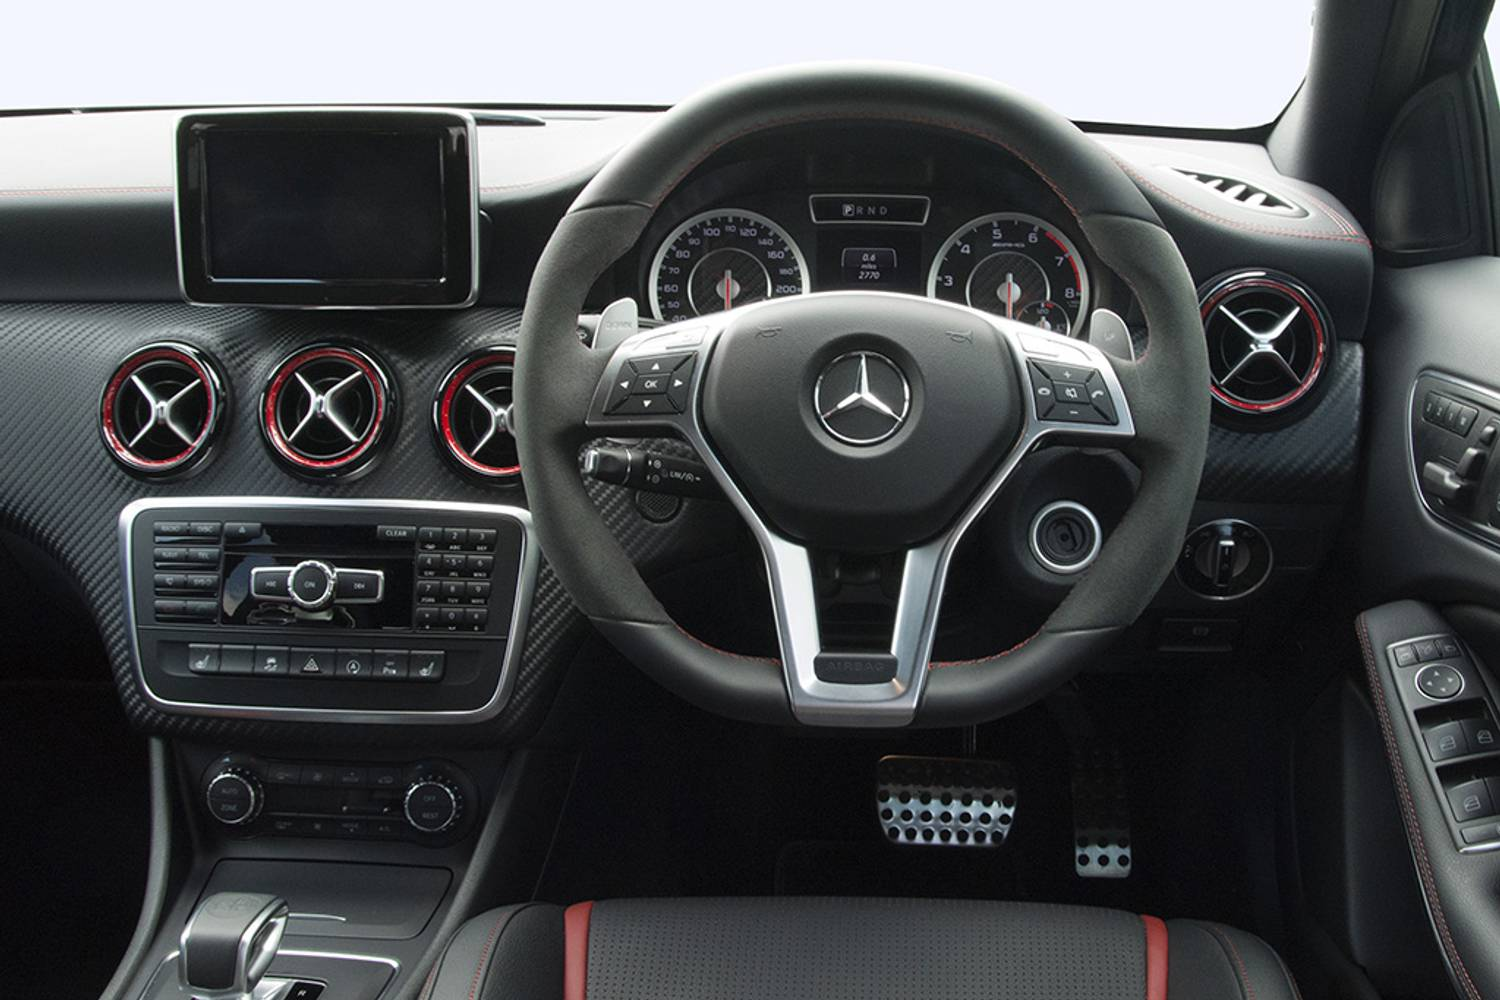 new mercedes benz a class amg hatchback special editions a45 4matic yellow night edition 5 door. Black Bedroom Furniture Sets. Home Design Ideas